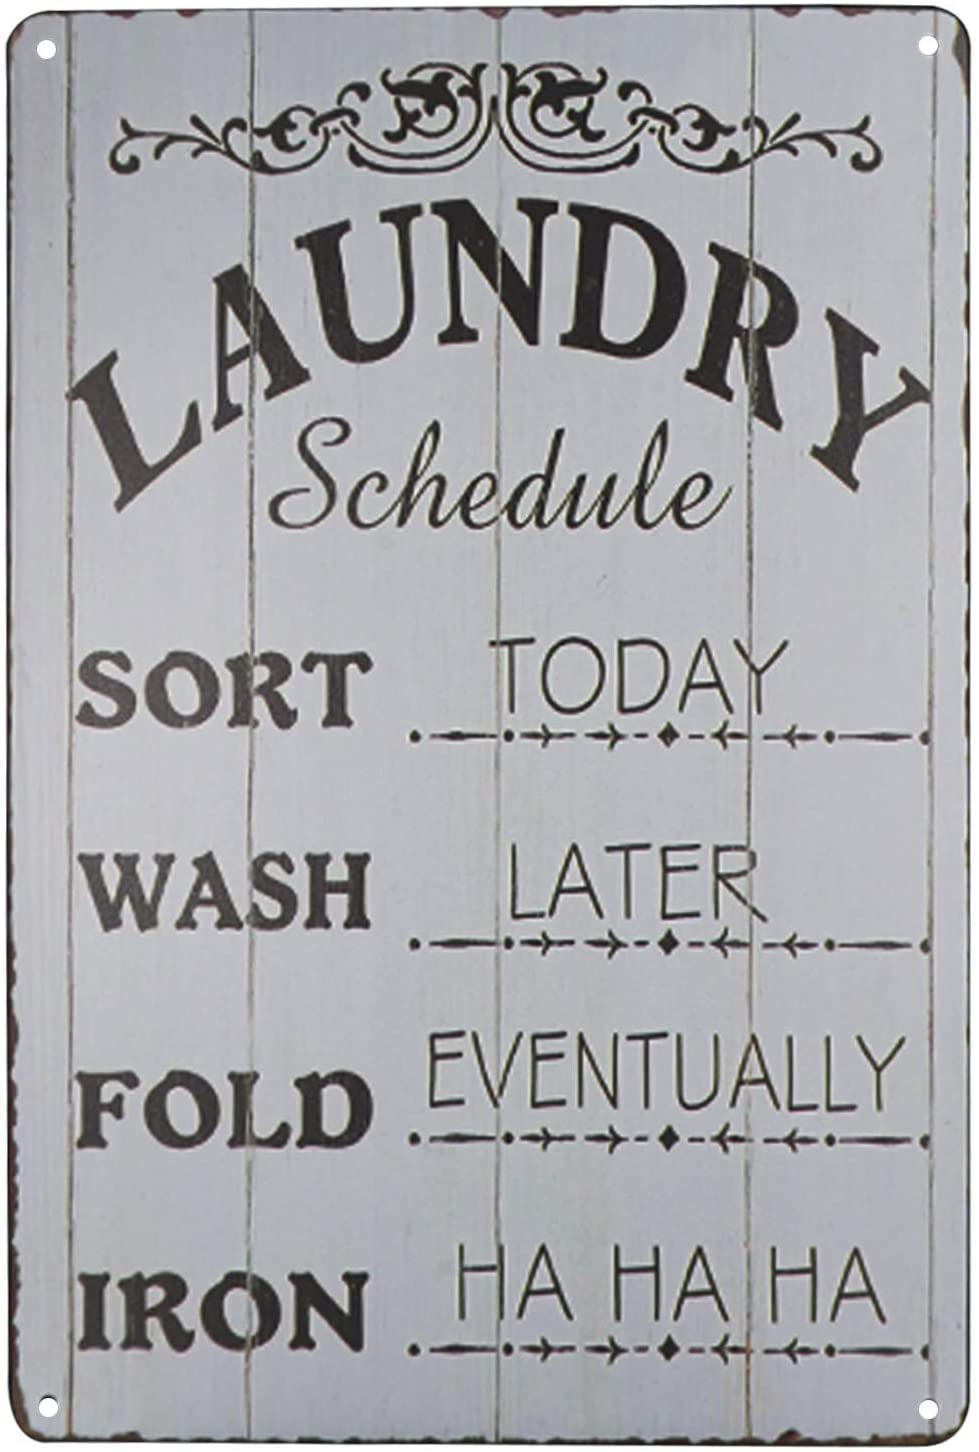 PXIYOU Laundry Schedule Vintage Distressed Look Farmhouse Metal Sign Wash Laundry Room Decor 8X12Inch